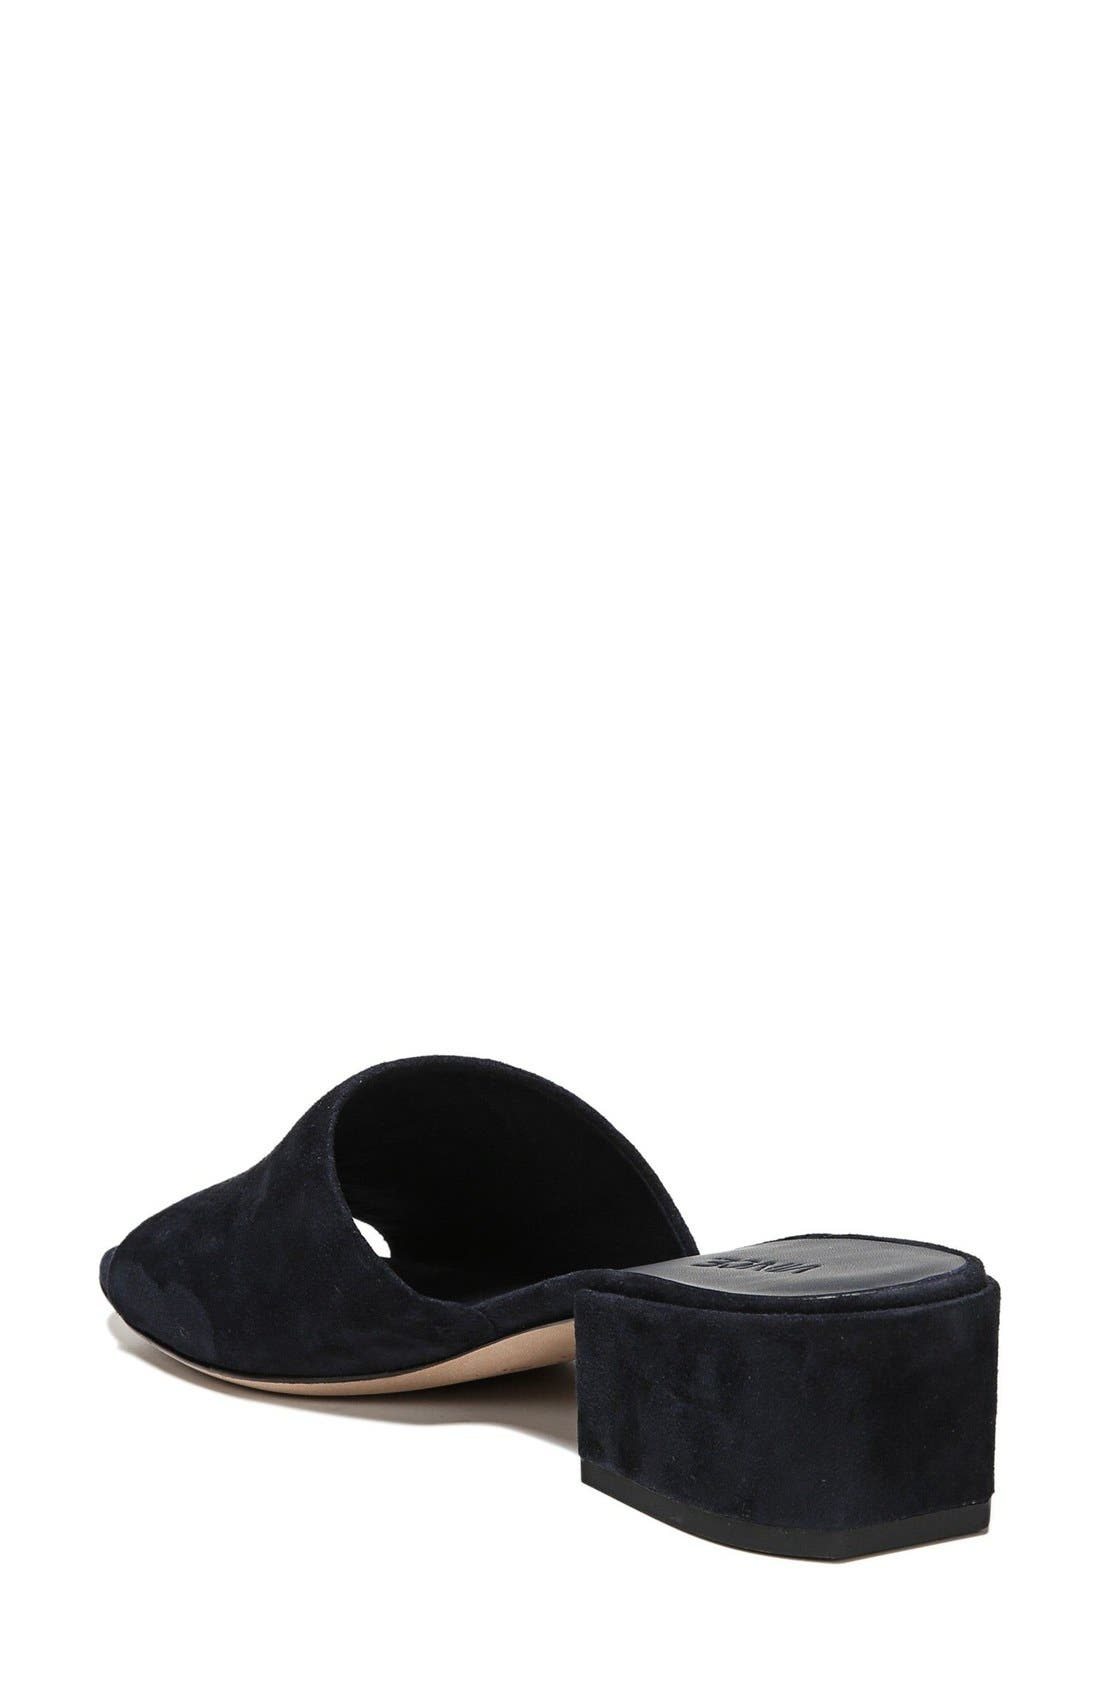 Alternate Image 2  - Vince Rachelle Slide Sandal (Women)